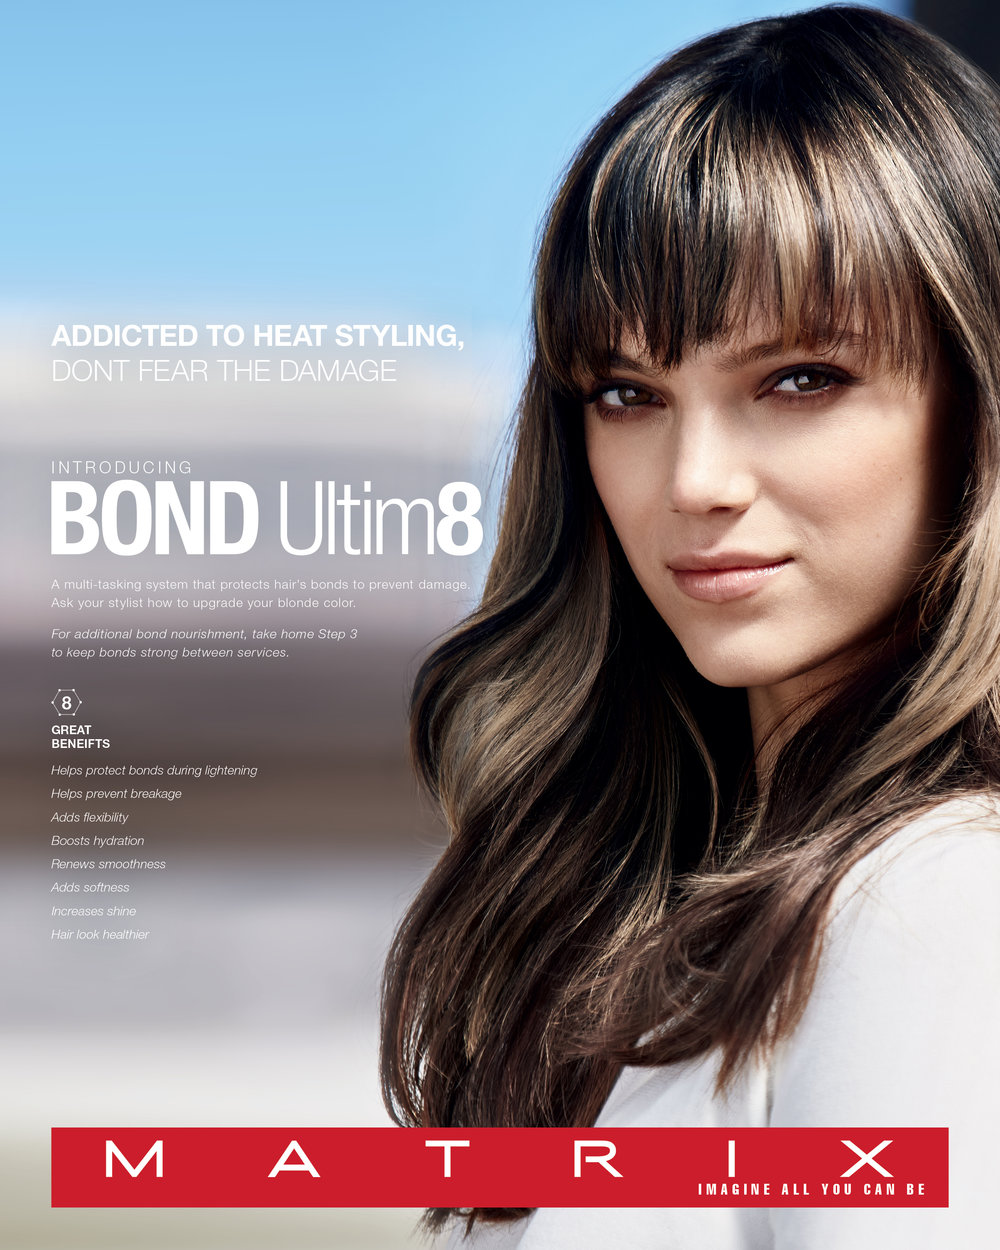 BOND_ULTIM8_SALON_POSTERS_BEAUTY2.jpg